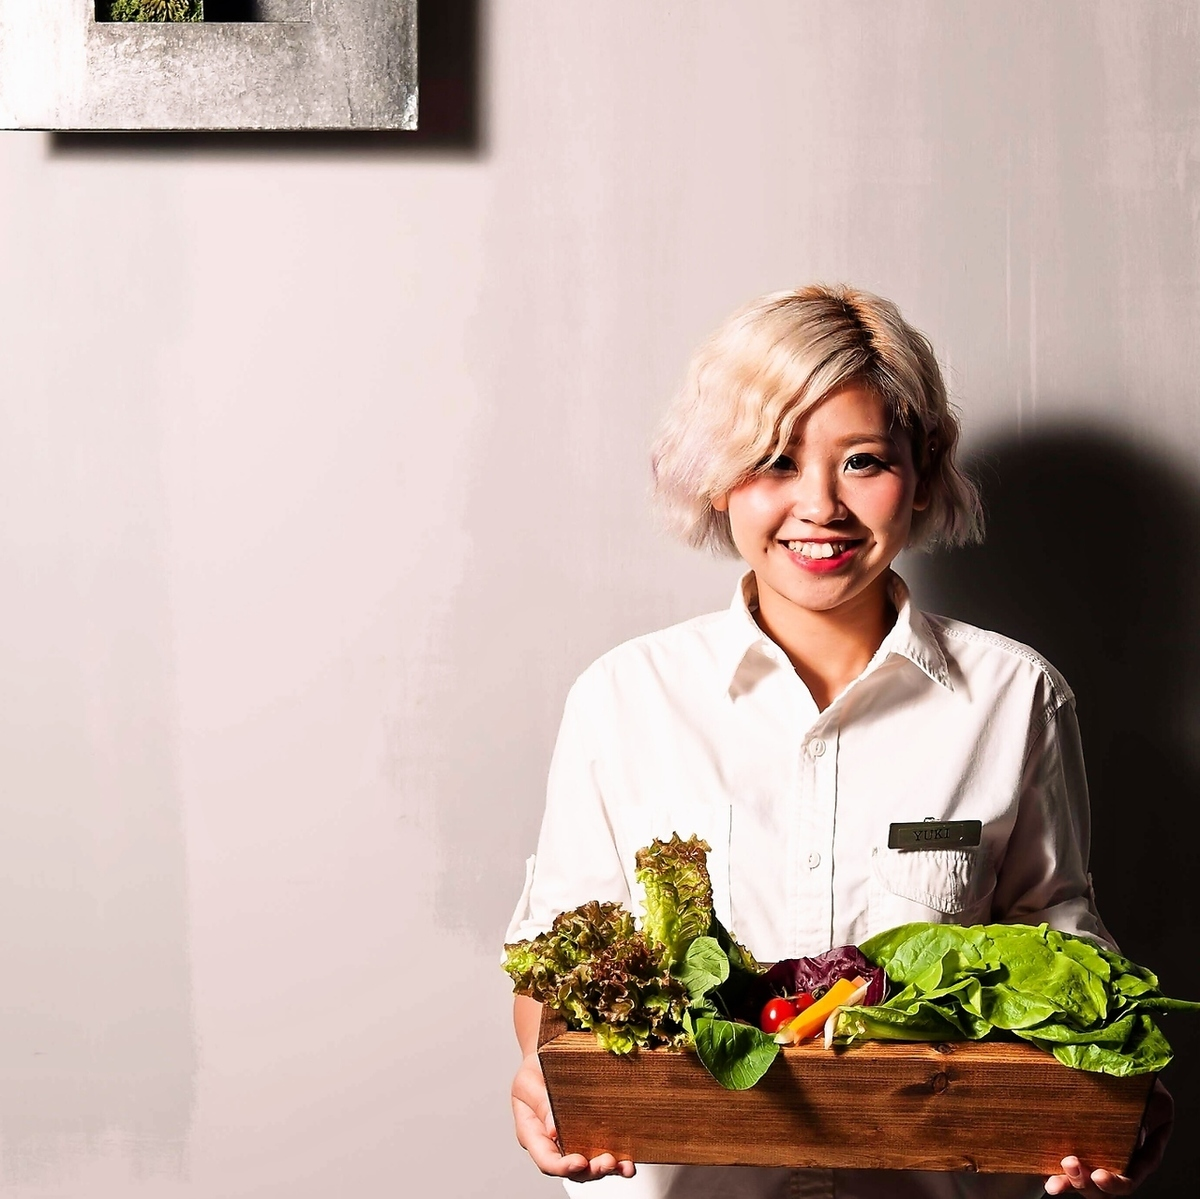 【Welcome to women】 All-you-can-eat vegetables!